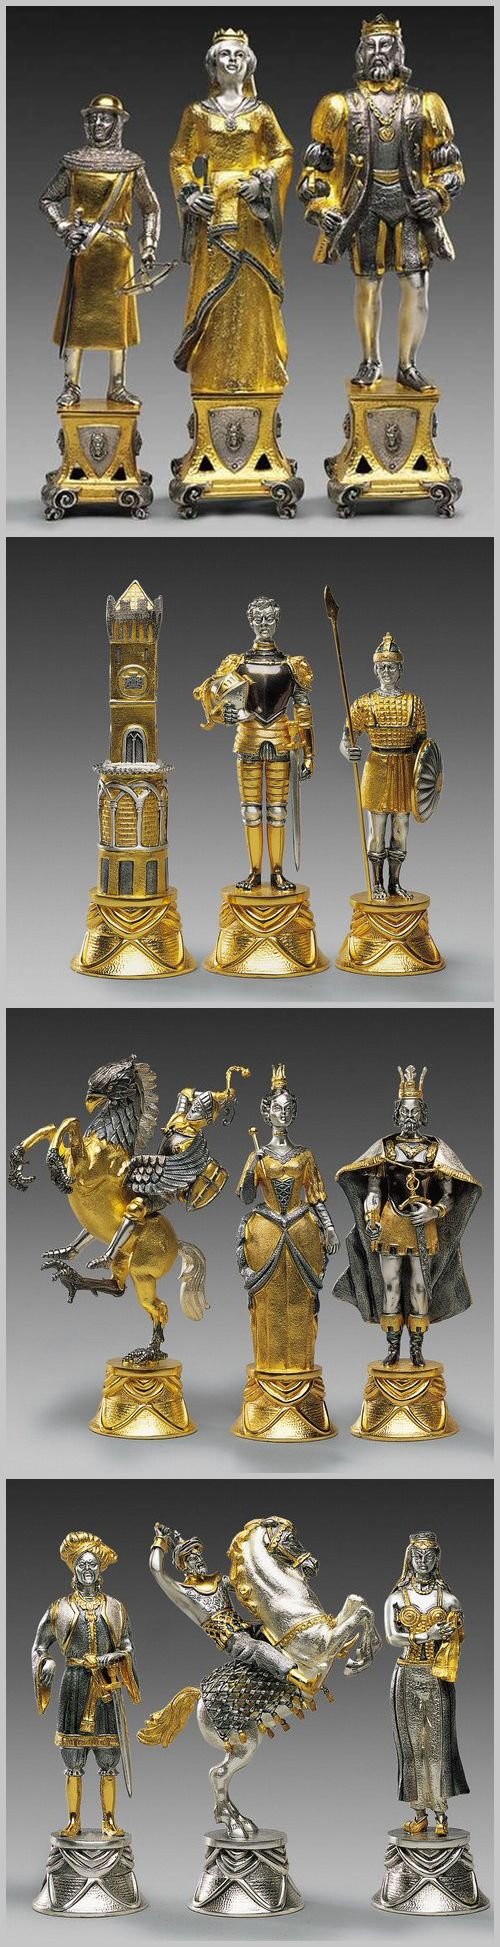 Carolingi vs Mori gold and silver themed chess pieces {pianki.com}.